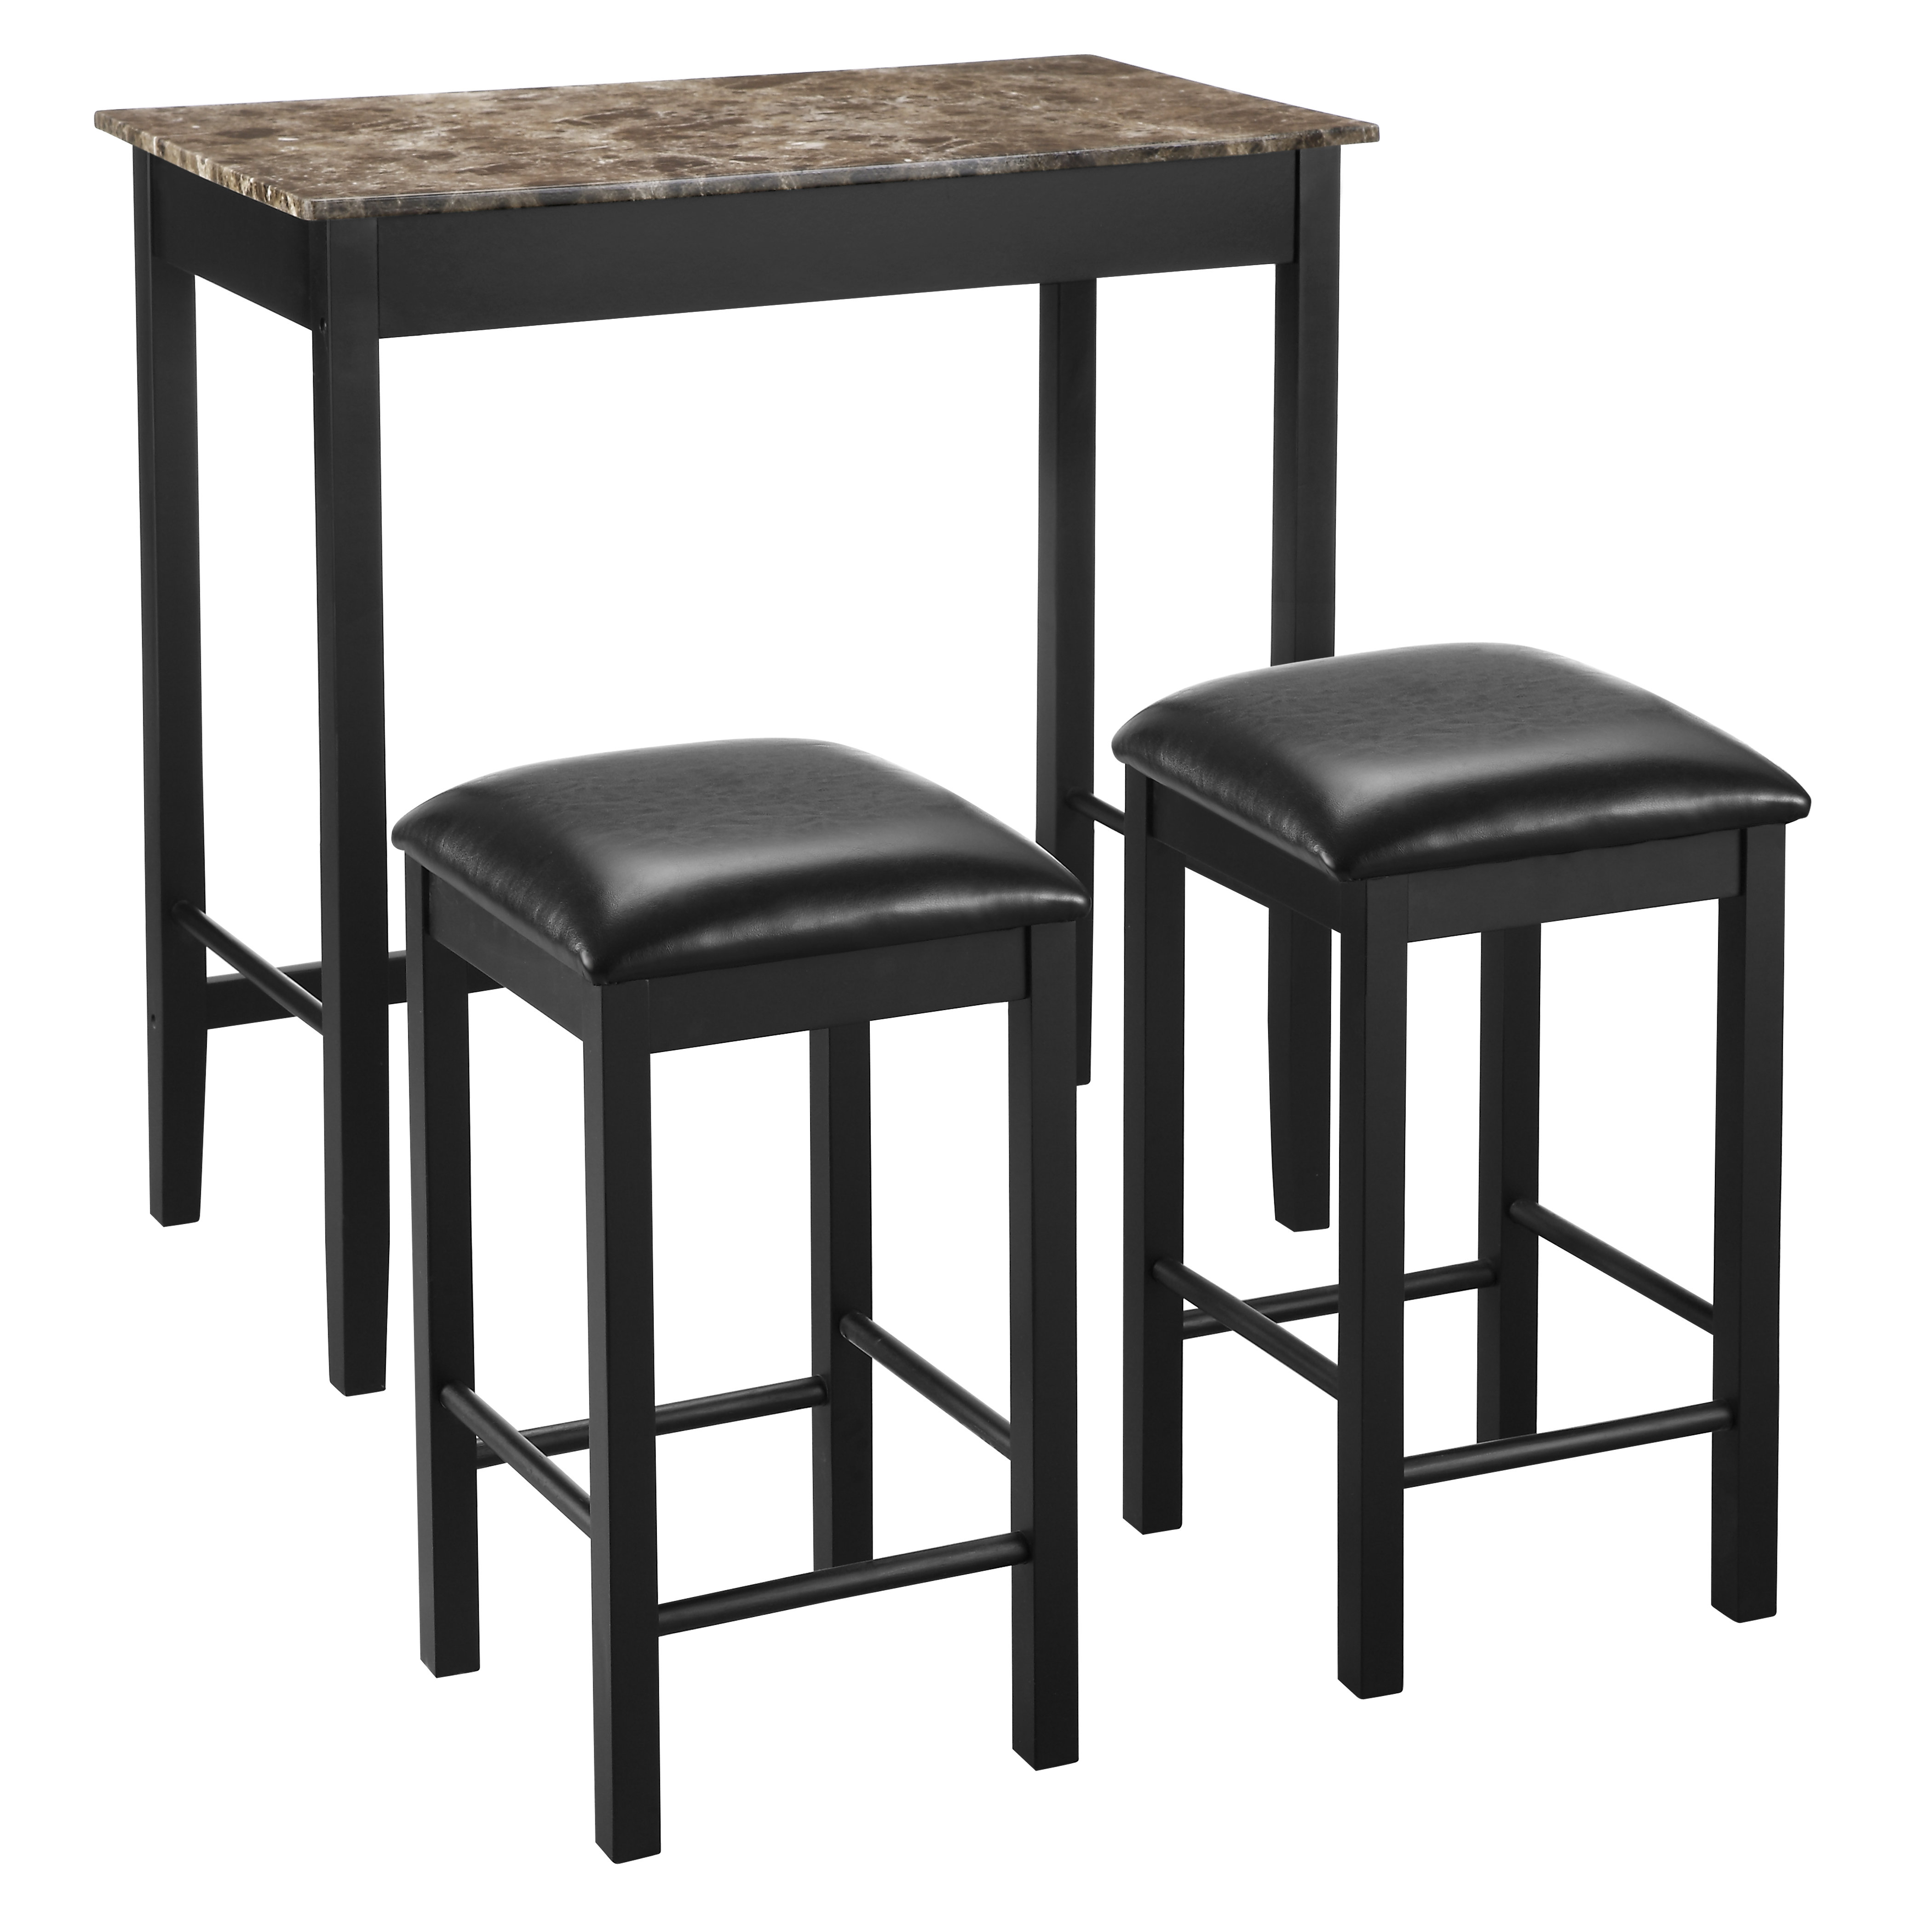 Preferred Tenney 3 Piece Counter Height Dining Sets Intended For Nutter 3 Piece Dining Set (View 12 of 20)